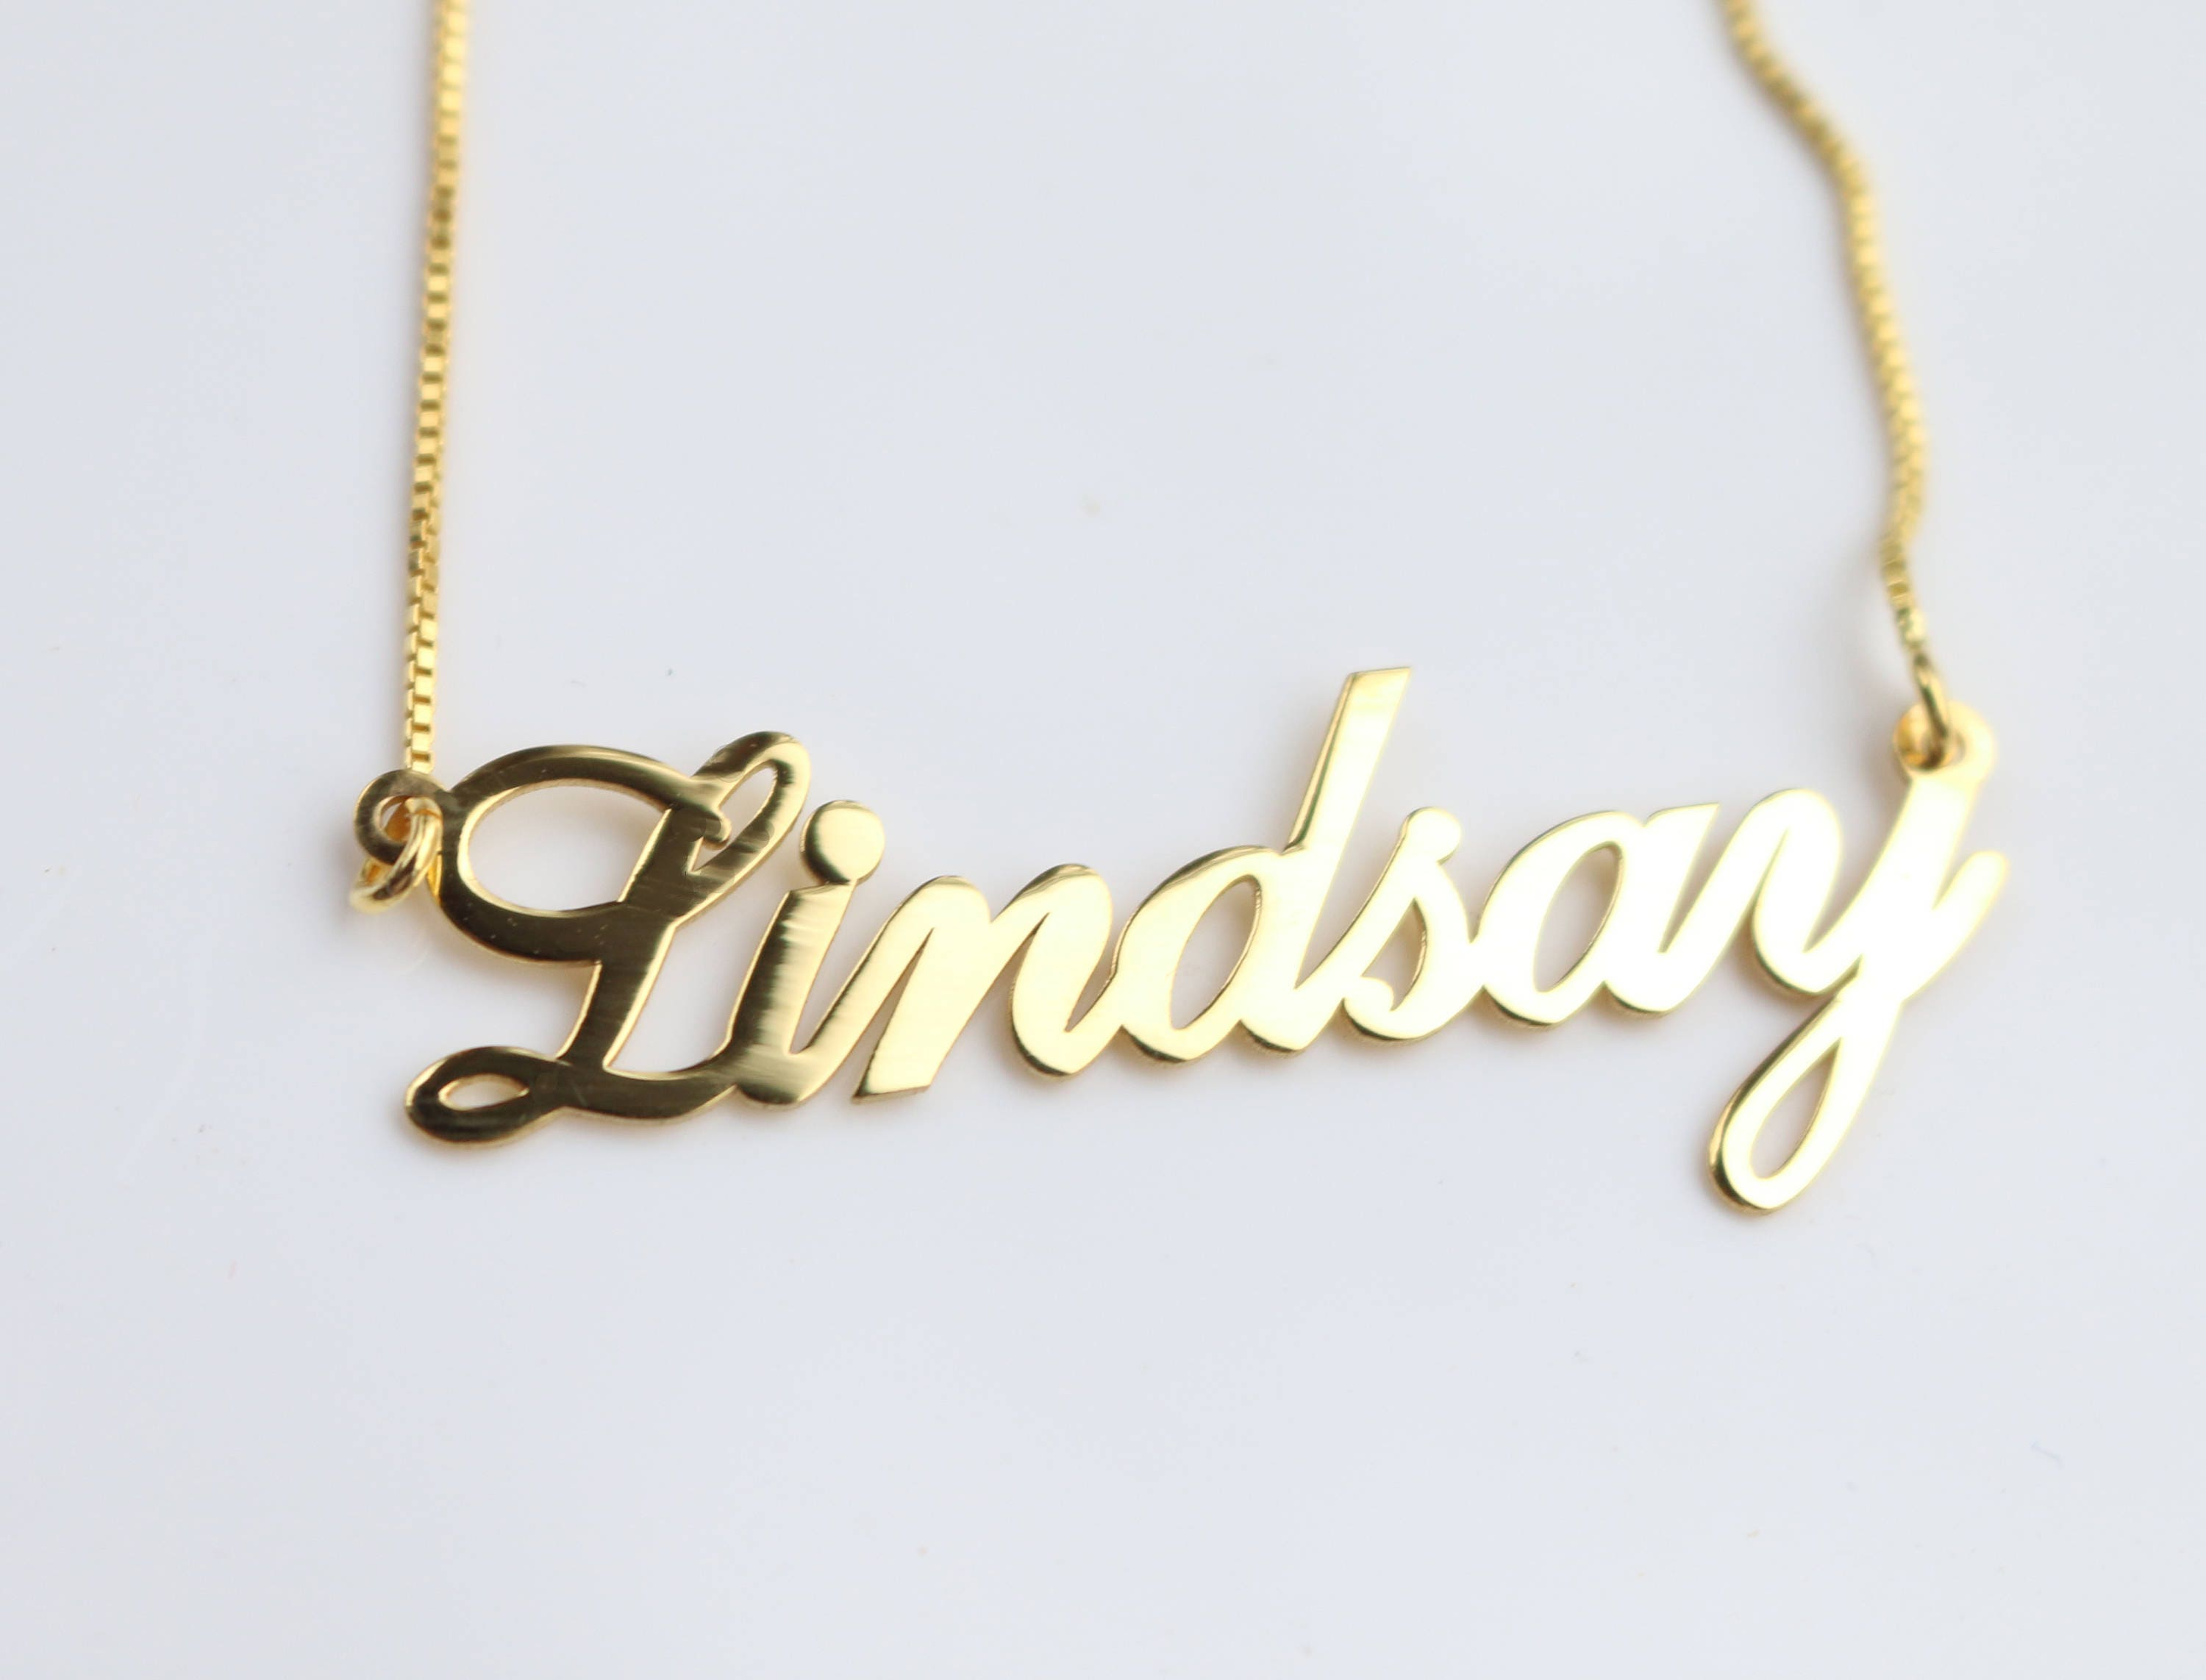 s childrens img products necklace lowercase cursive cropped children uppercase edited initial tom